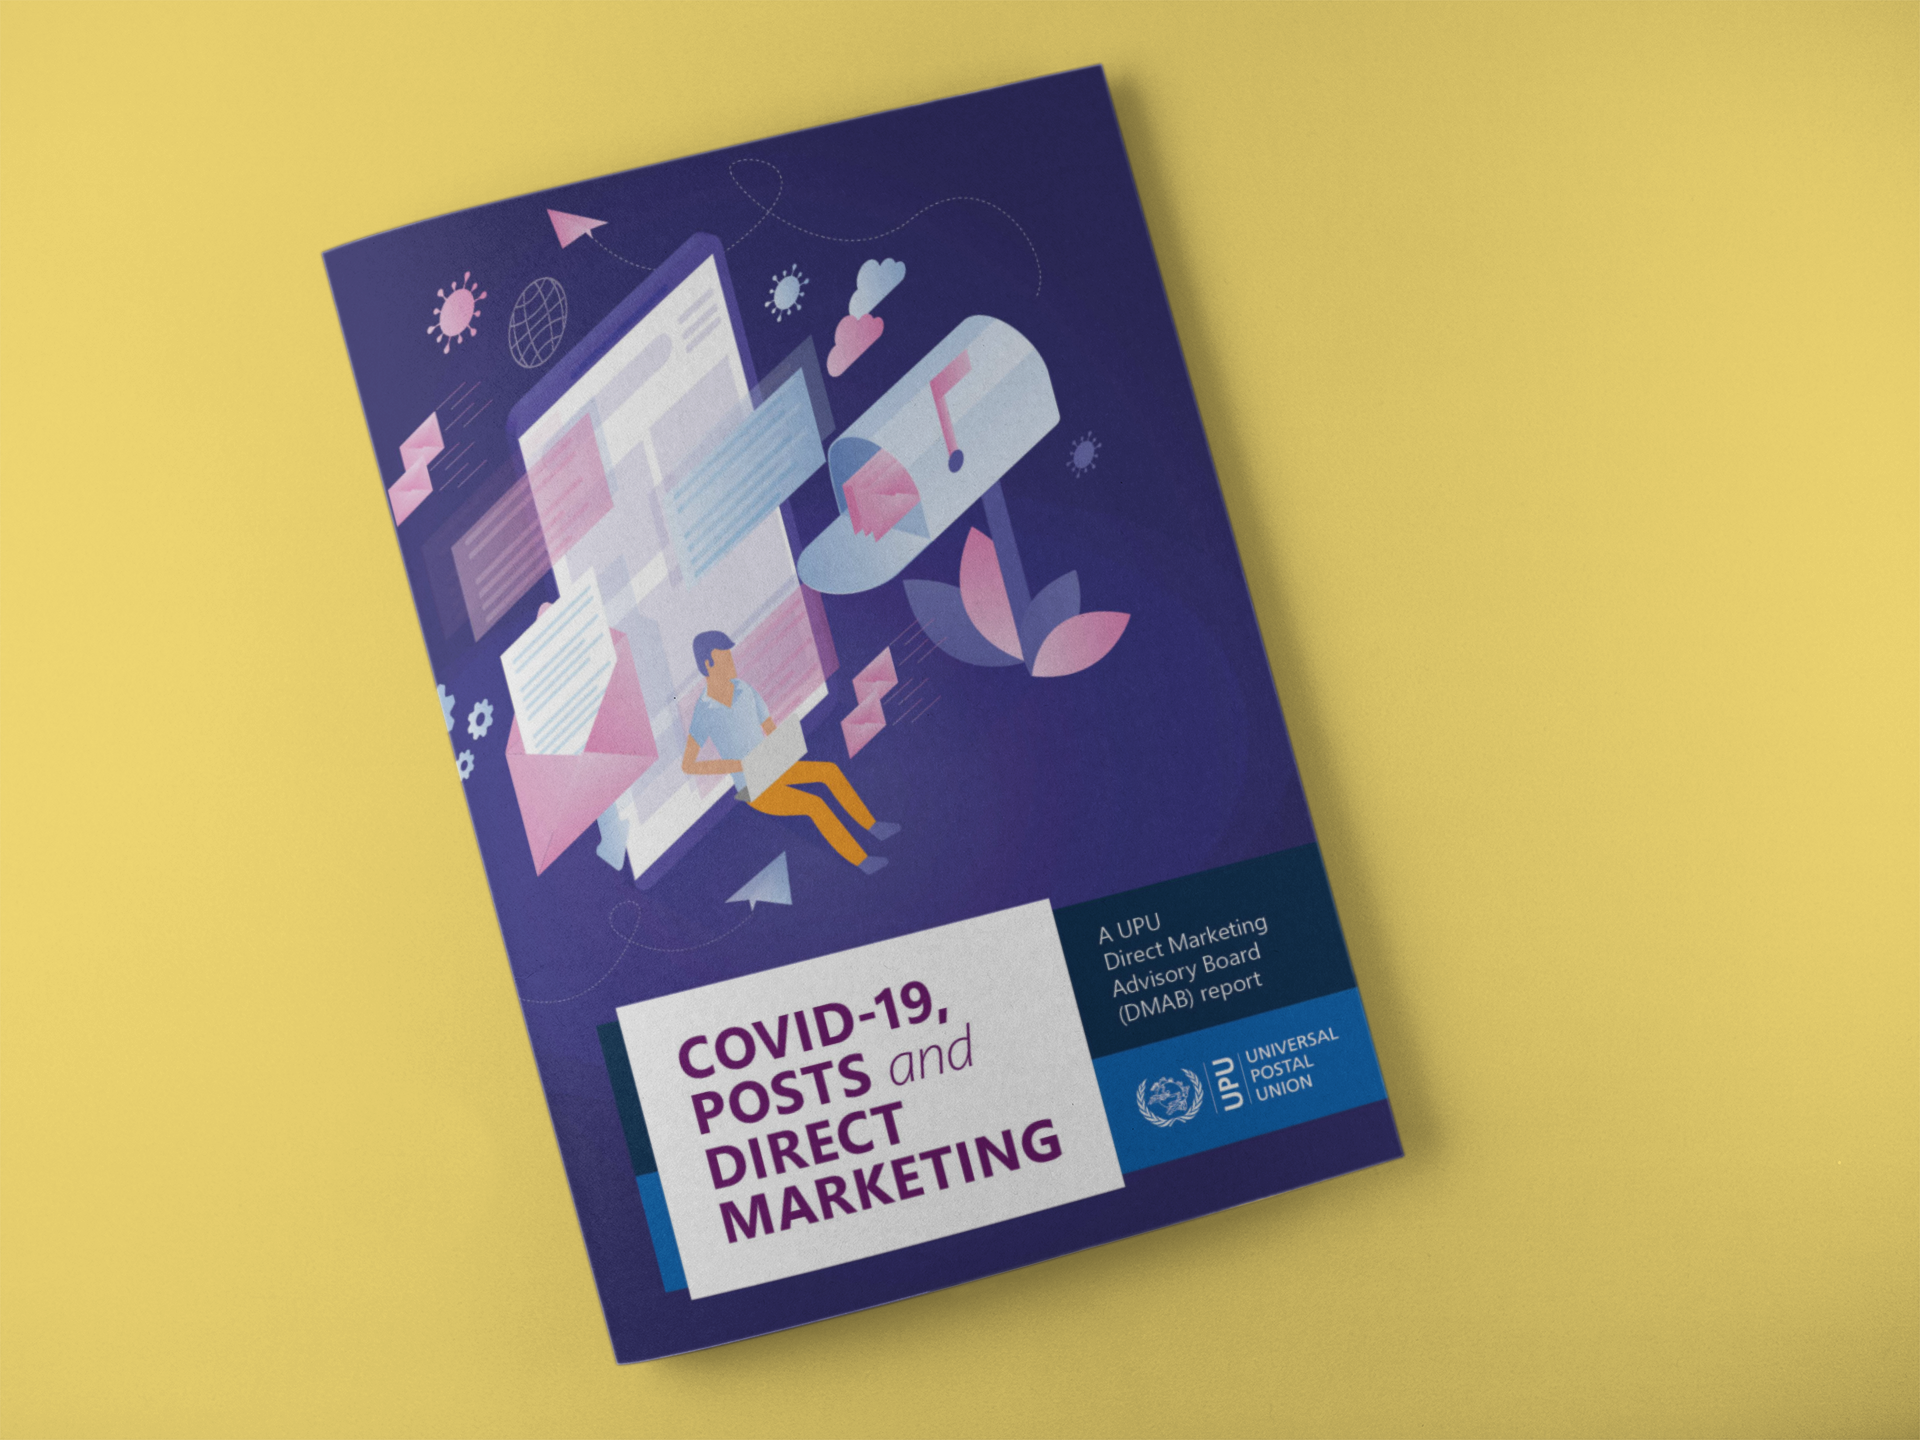 UPU Direct Marketing Advisory Board (DMAB) report on COVID-19 and direct marketing